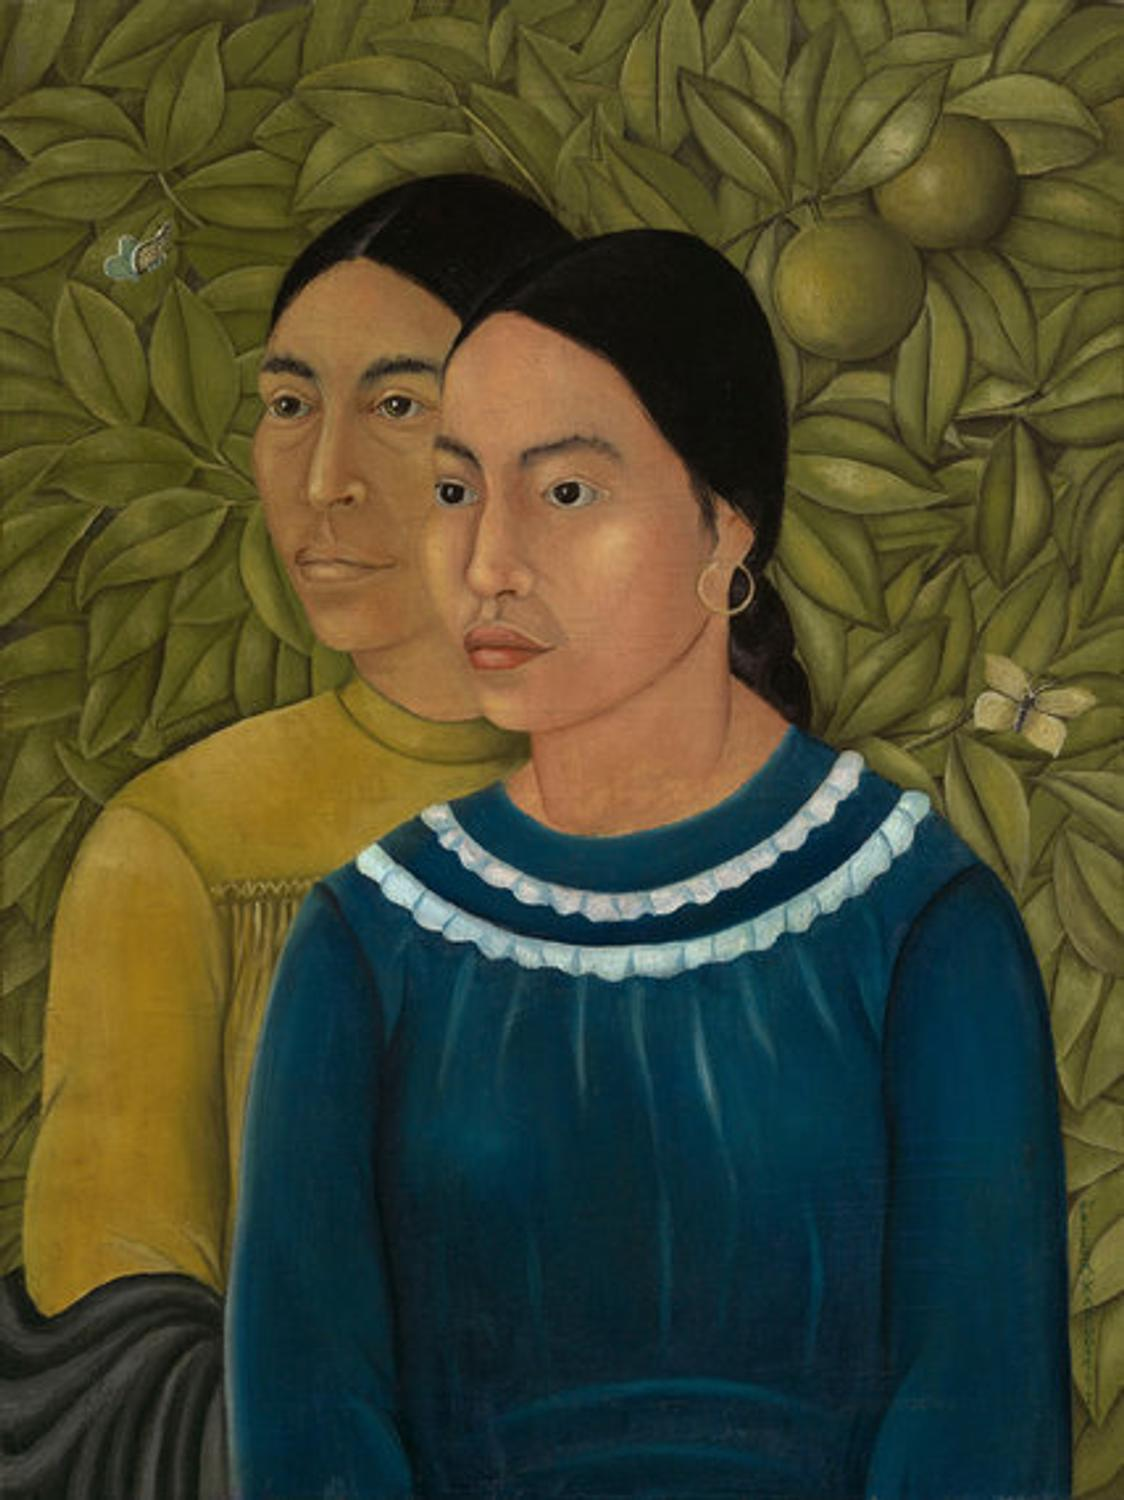 Museum Of Fine Arts Boston Acquires Work By Frida Kahlo